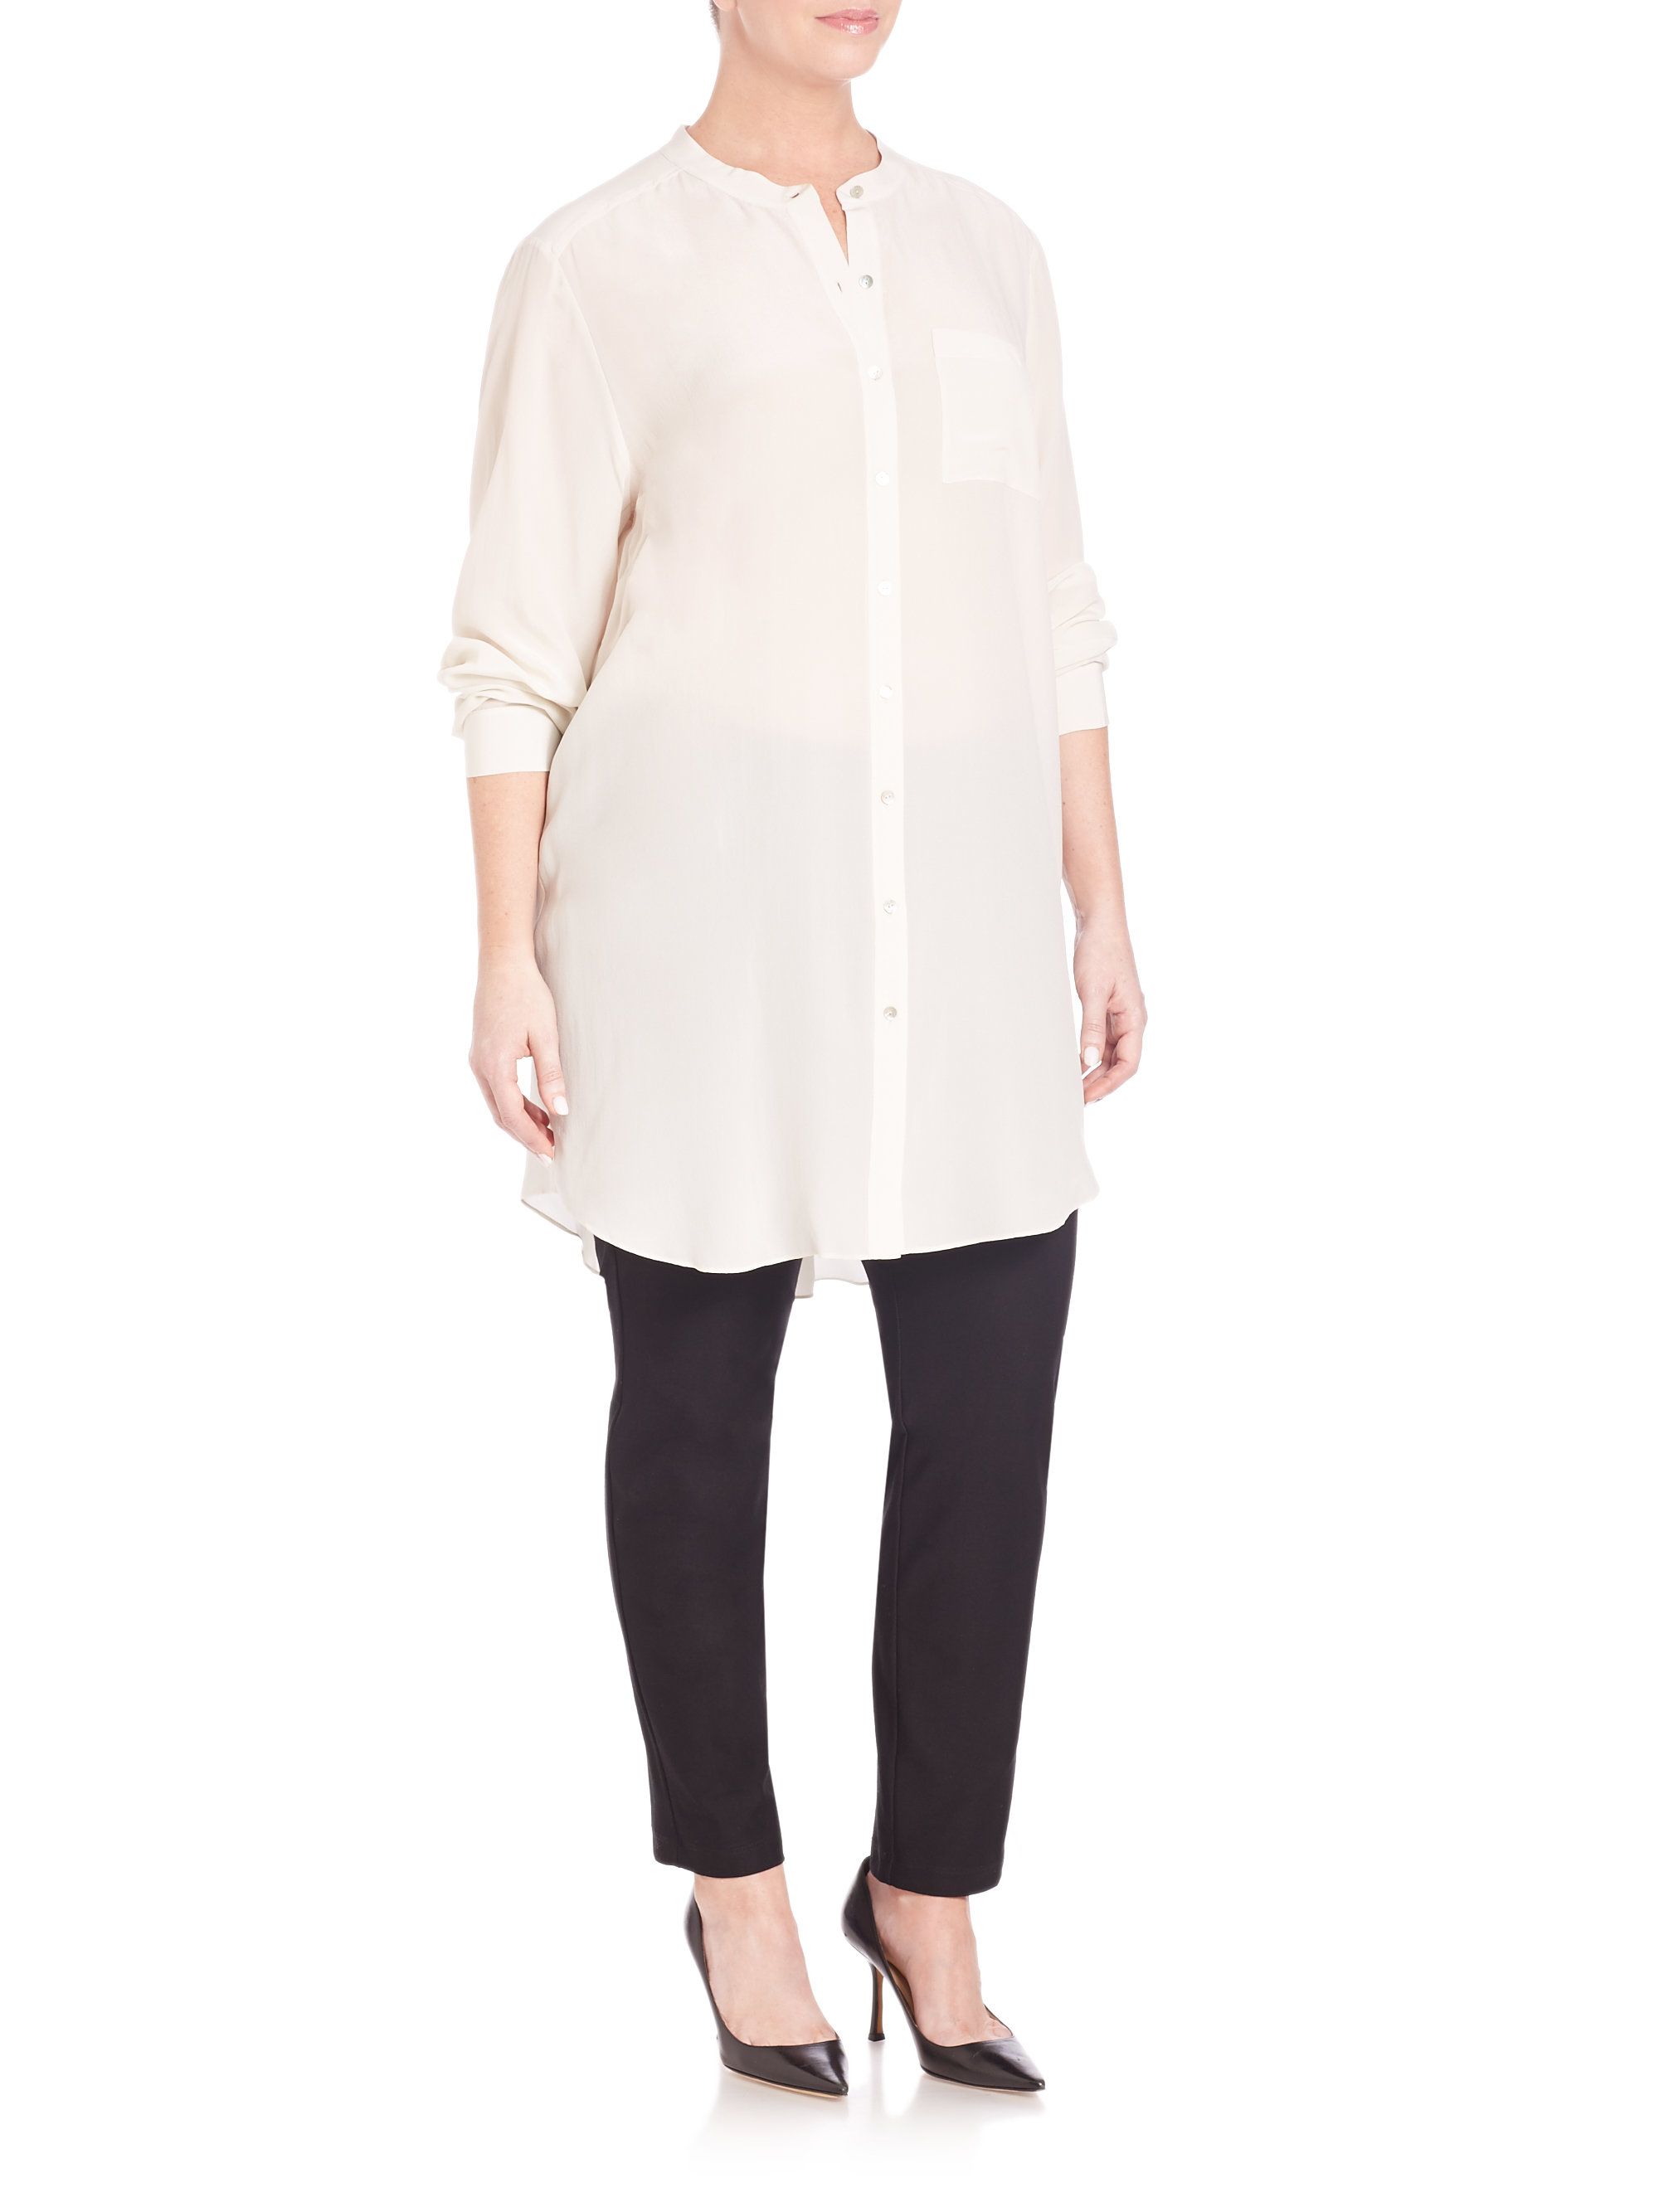 b6d59d8ad55ce Lyst - Eileen Fisher Silk Mandarin-collar Blouse in White